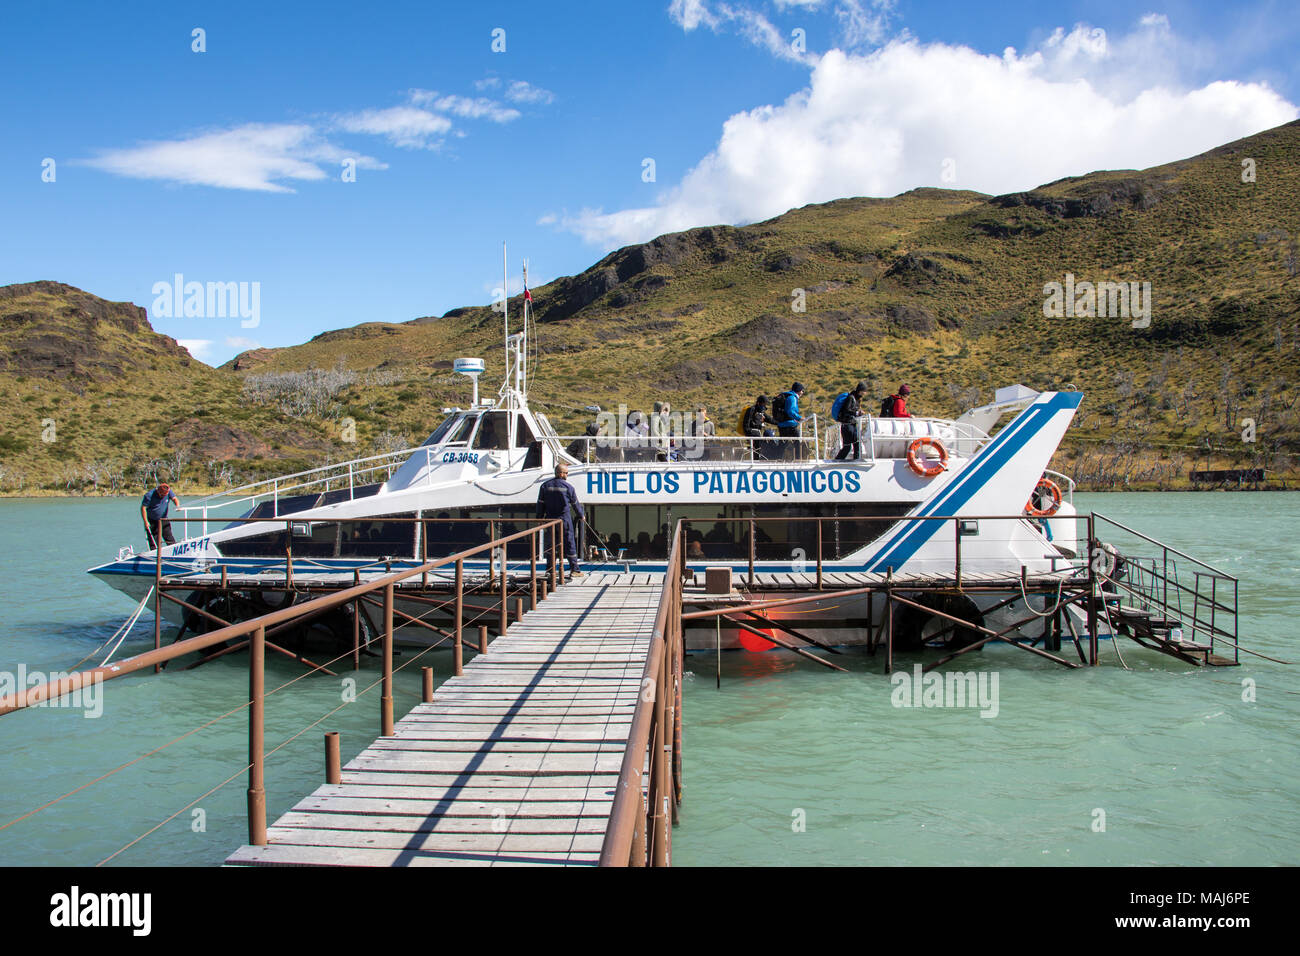 Hielos Patagonicos, Sightseeing boat on Lago Pehoe, Torres del Paine National Park, Patagonia, Chile Stock Photo